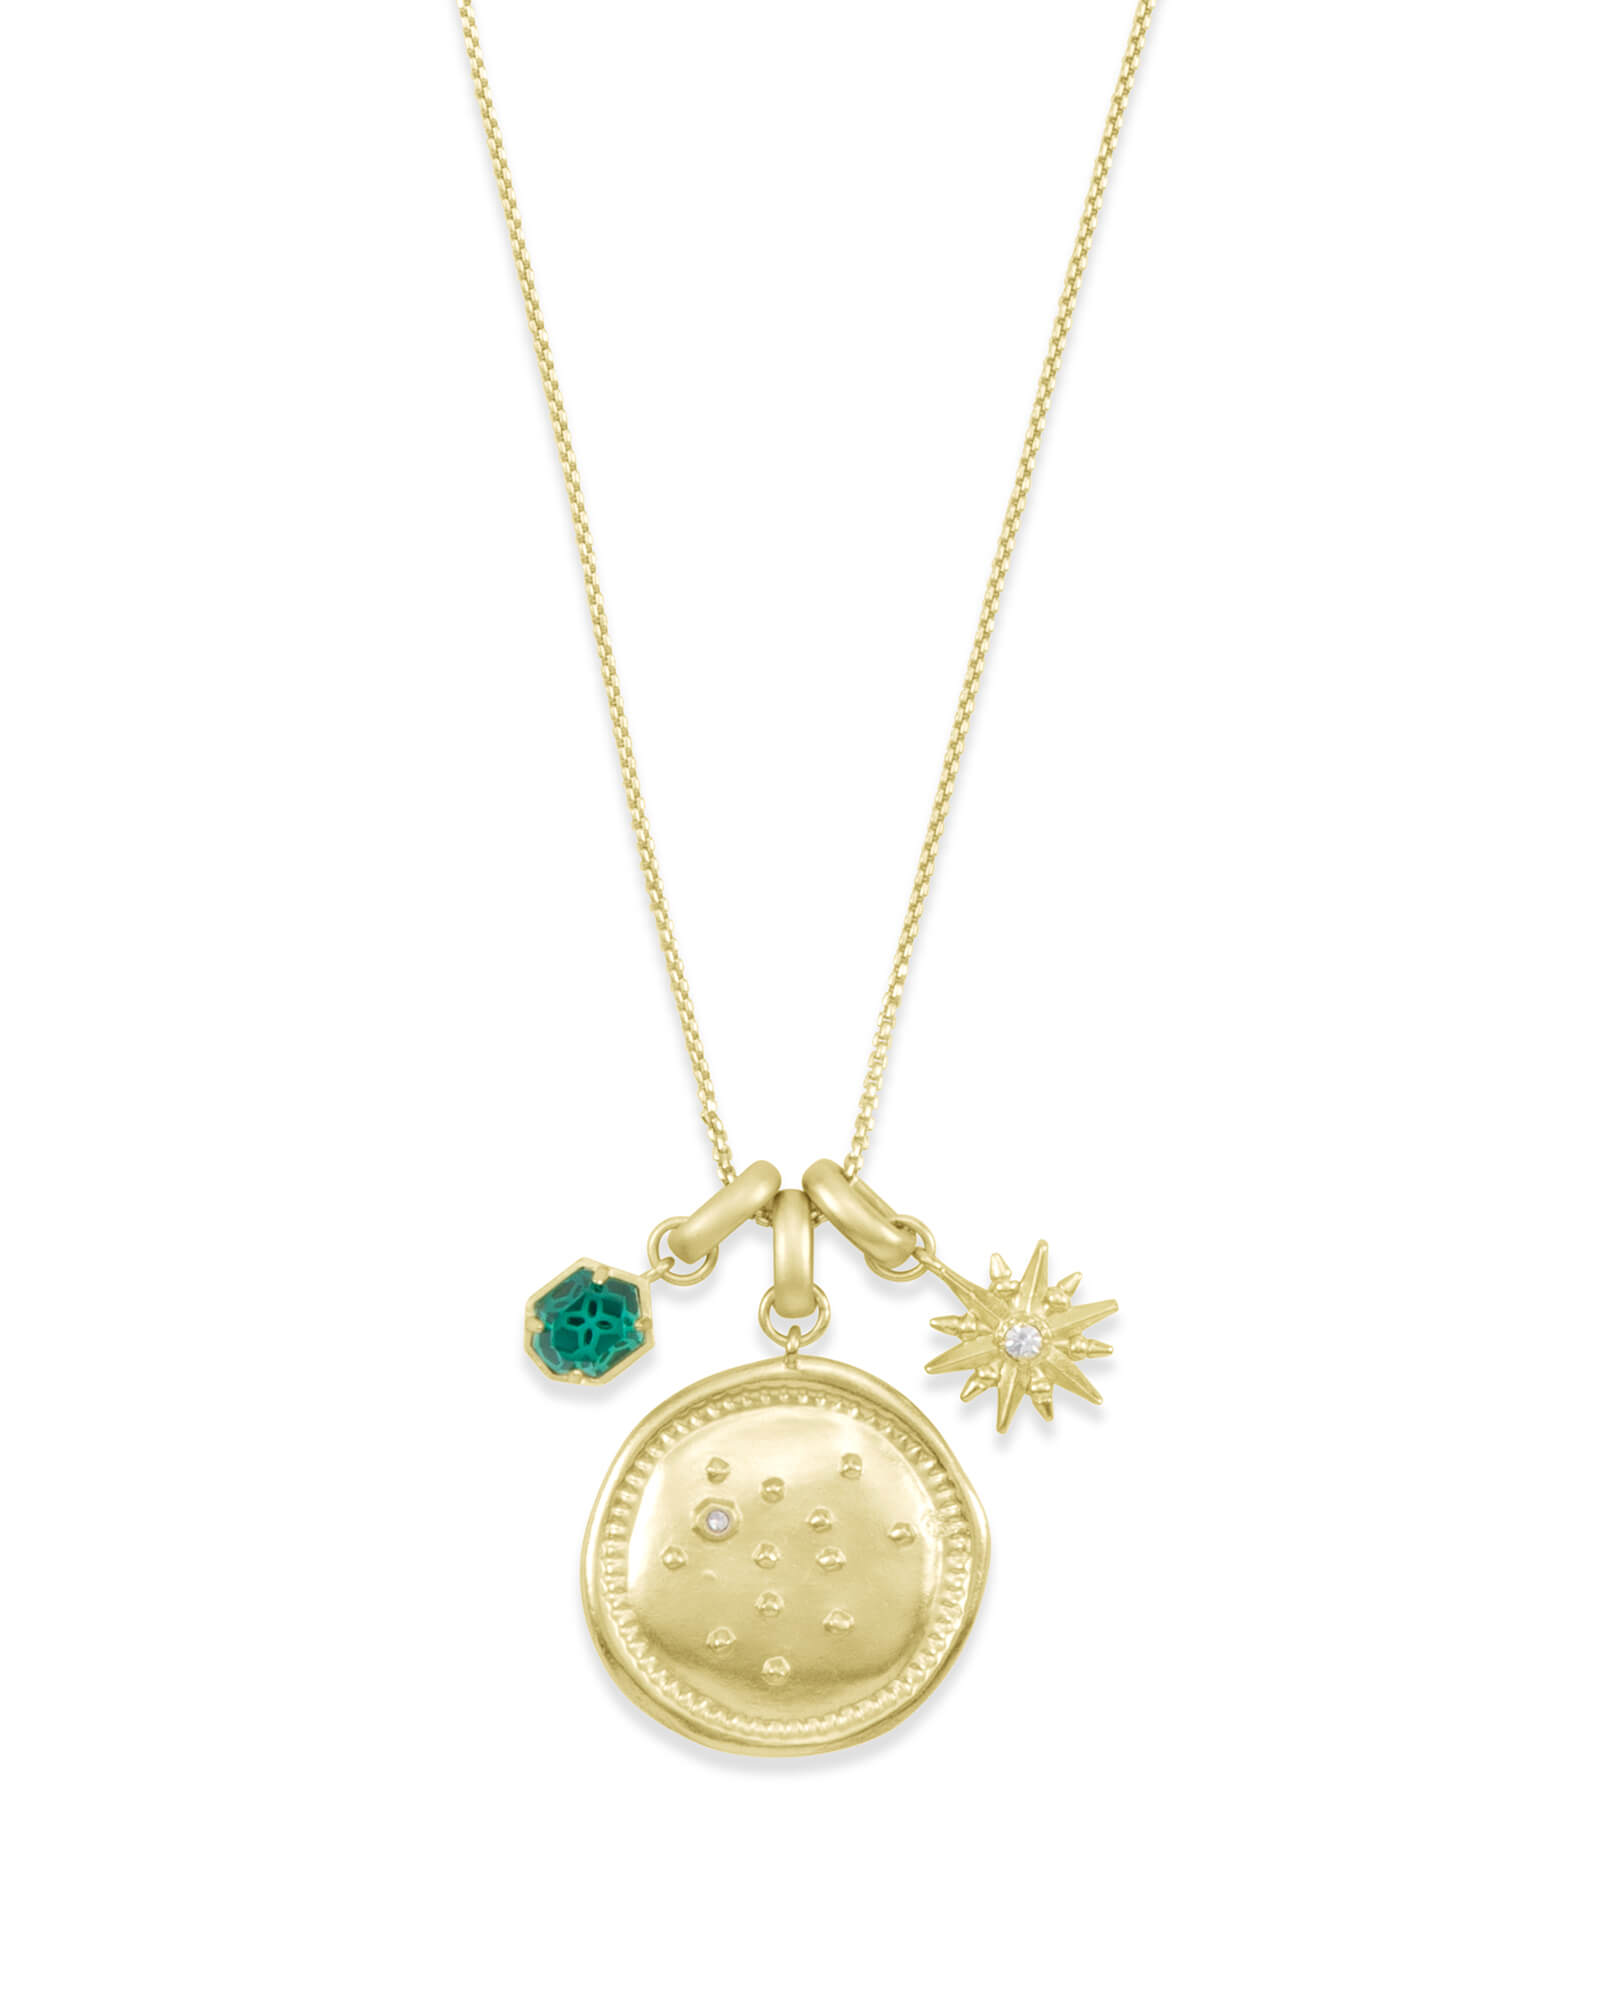 December Sagittarius Charm Necklace Set